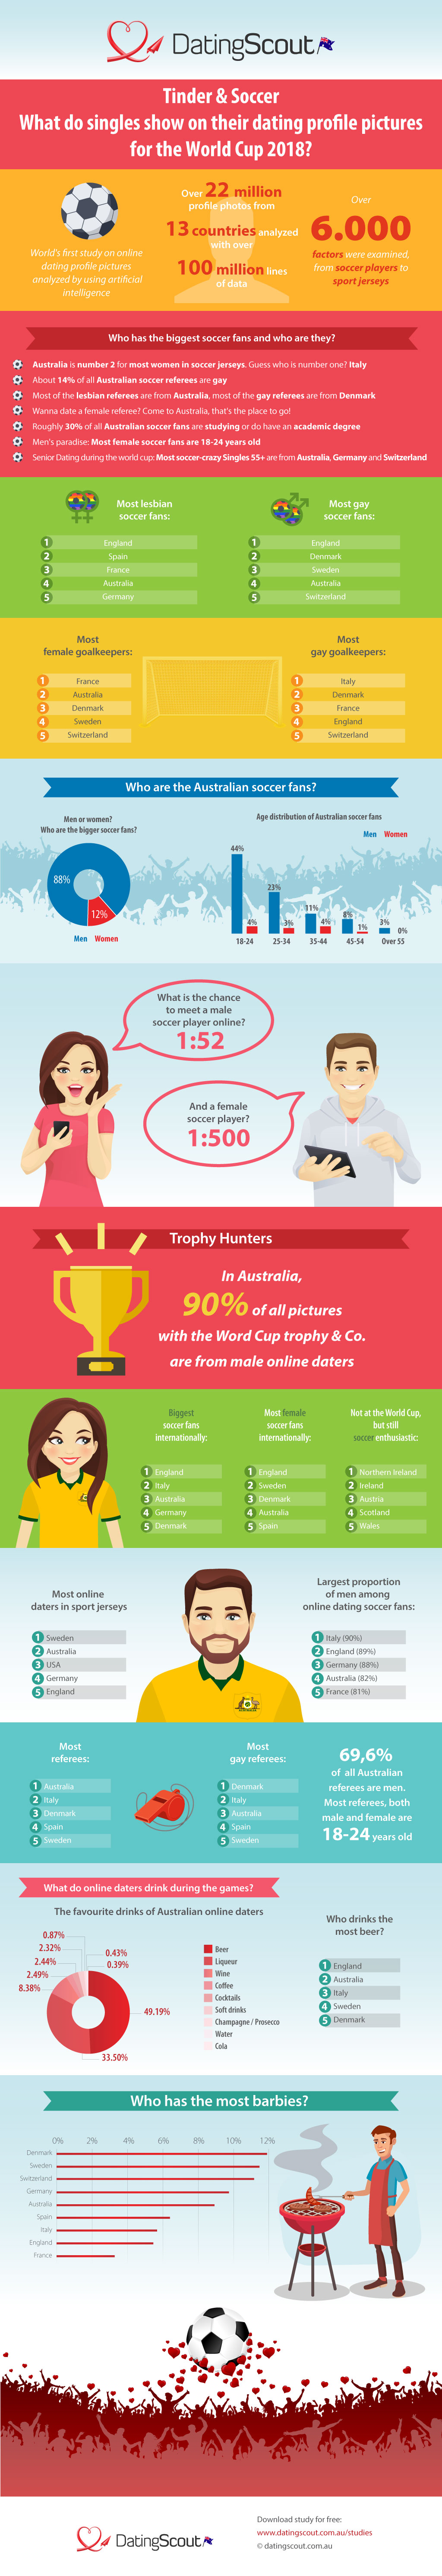 DatingScout.com.au Infographic World Cup 2018